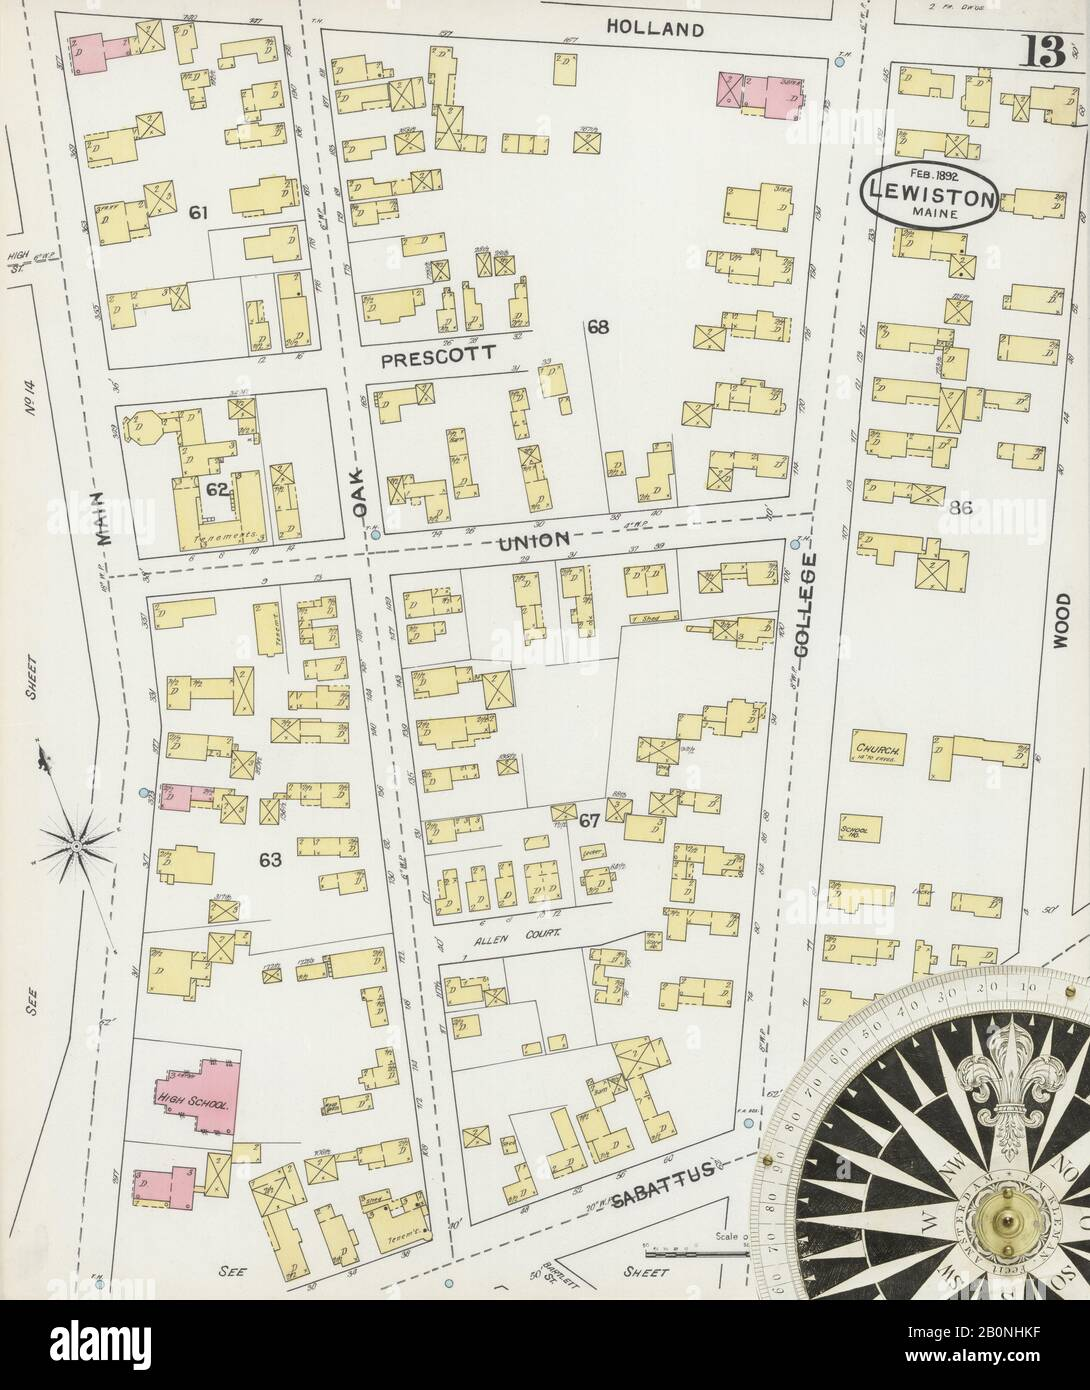 Image 13 of Sanborn Fire Insurance Map from Lewiston, Androscoggin County, Maine. Feb 1892. 15 Sheet(s), America, street map with a Nineteenth Century compass Stock Photo